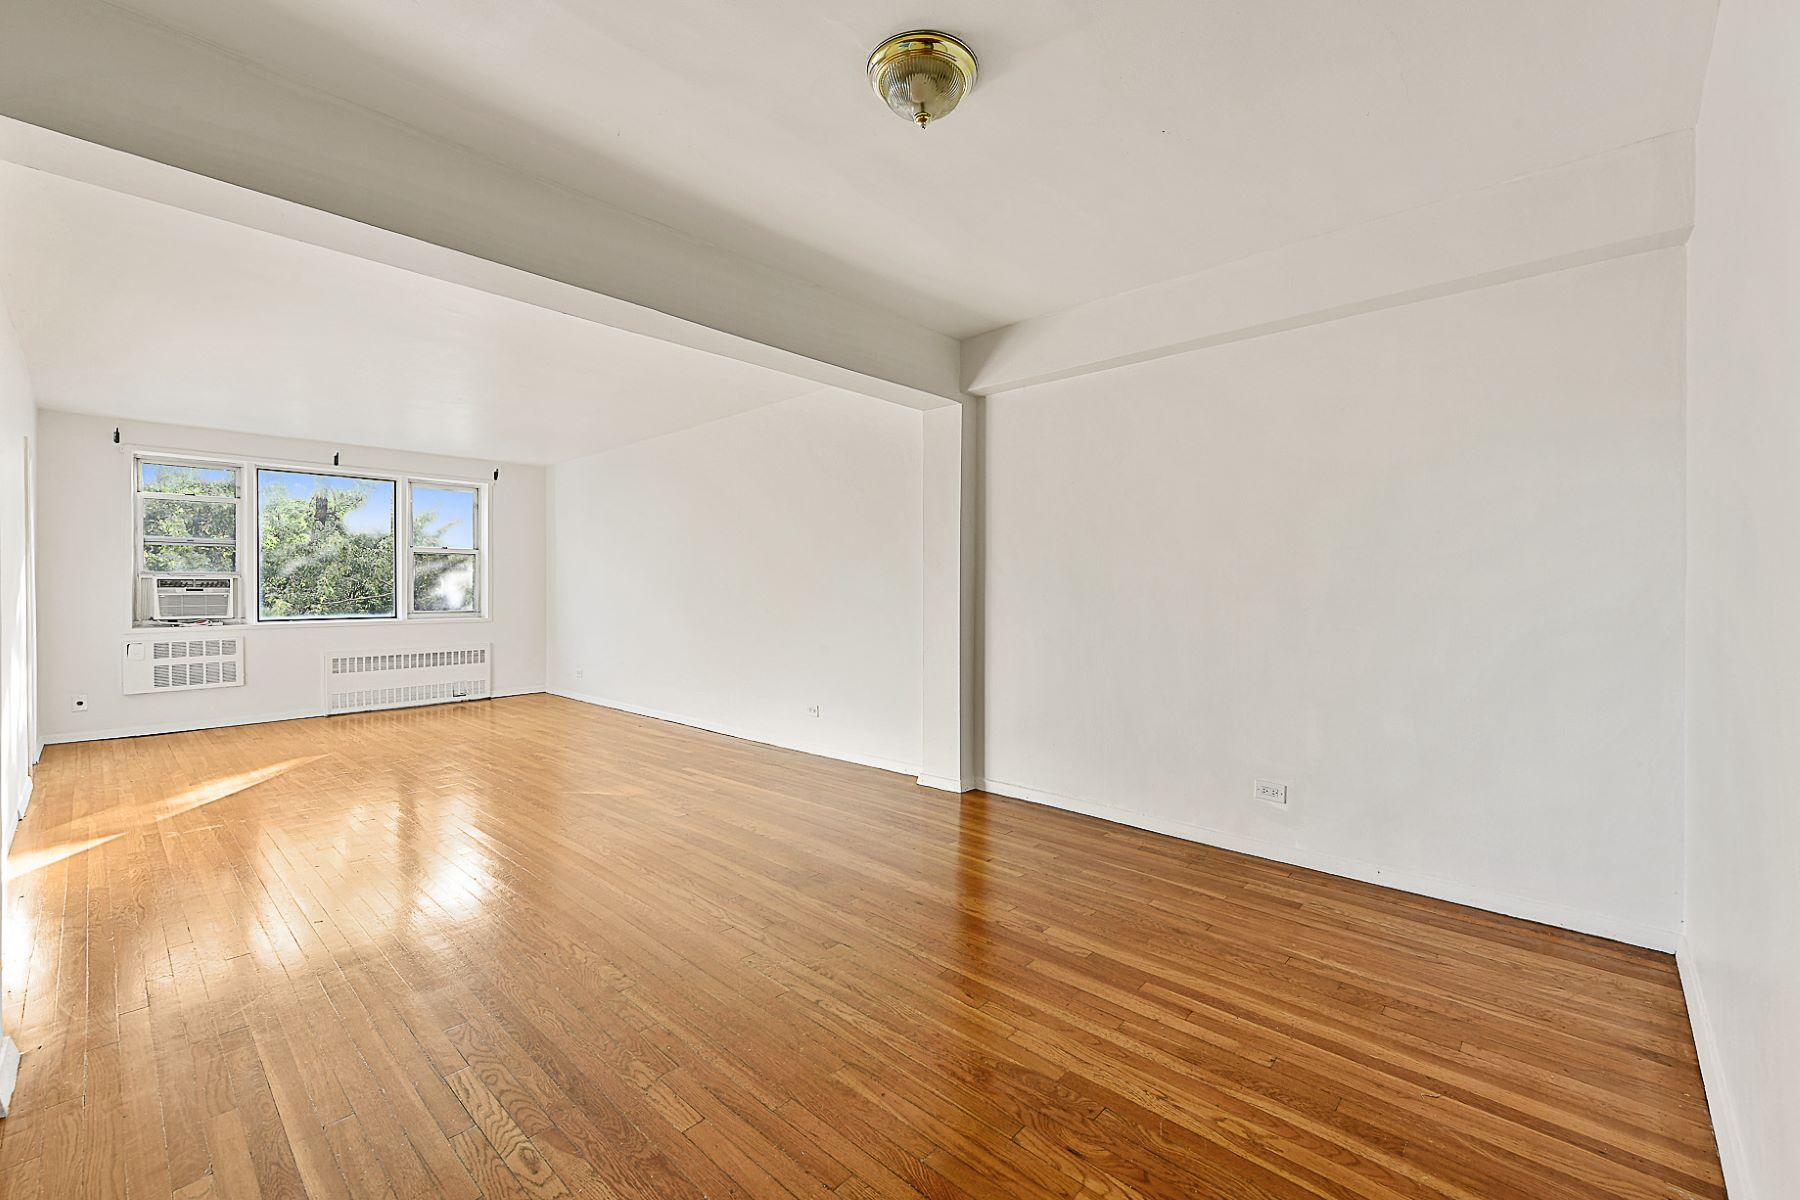 共有公寓 為 出售 在 Large Terrace and Move-in Ready 3050 FAIRFIELD AVENUE 6L, Riverdale, 紐約州, 10463 美國